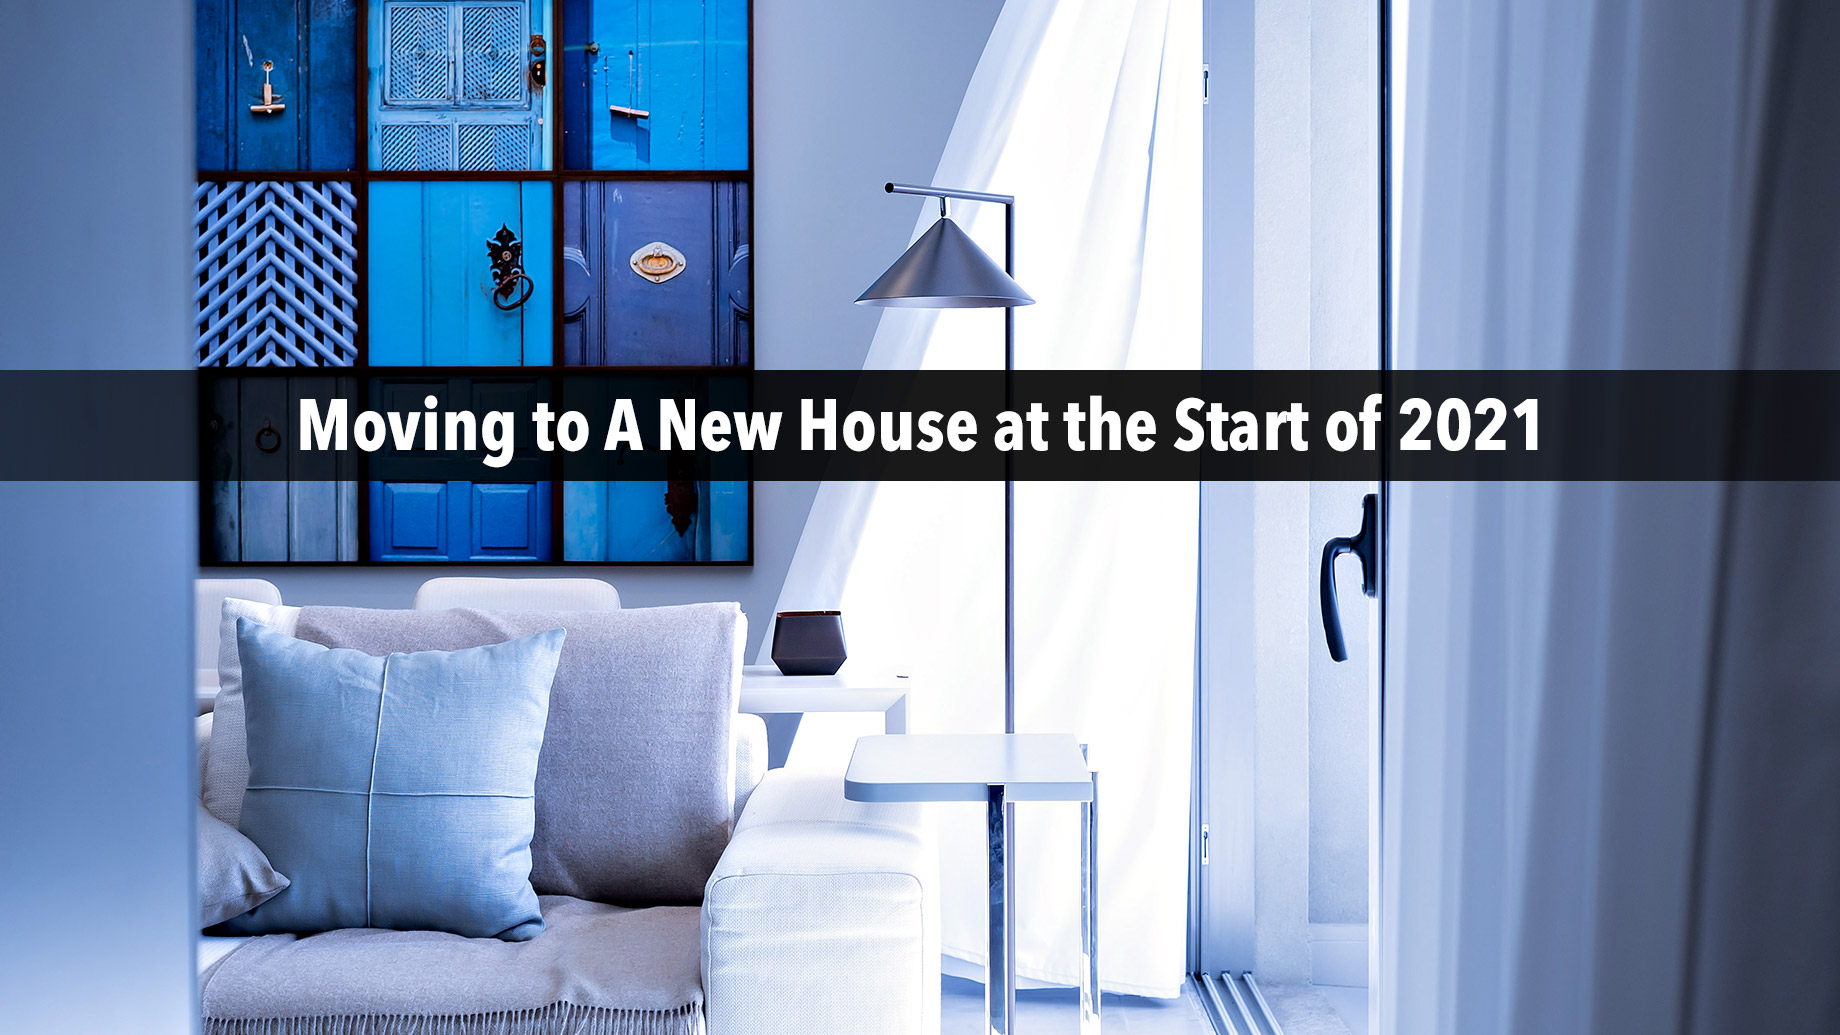 Moving to A New House at the Start of 2021